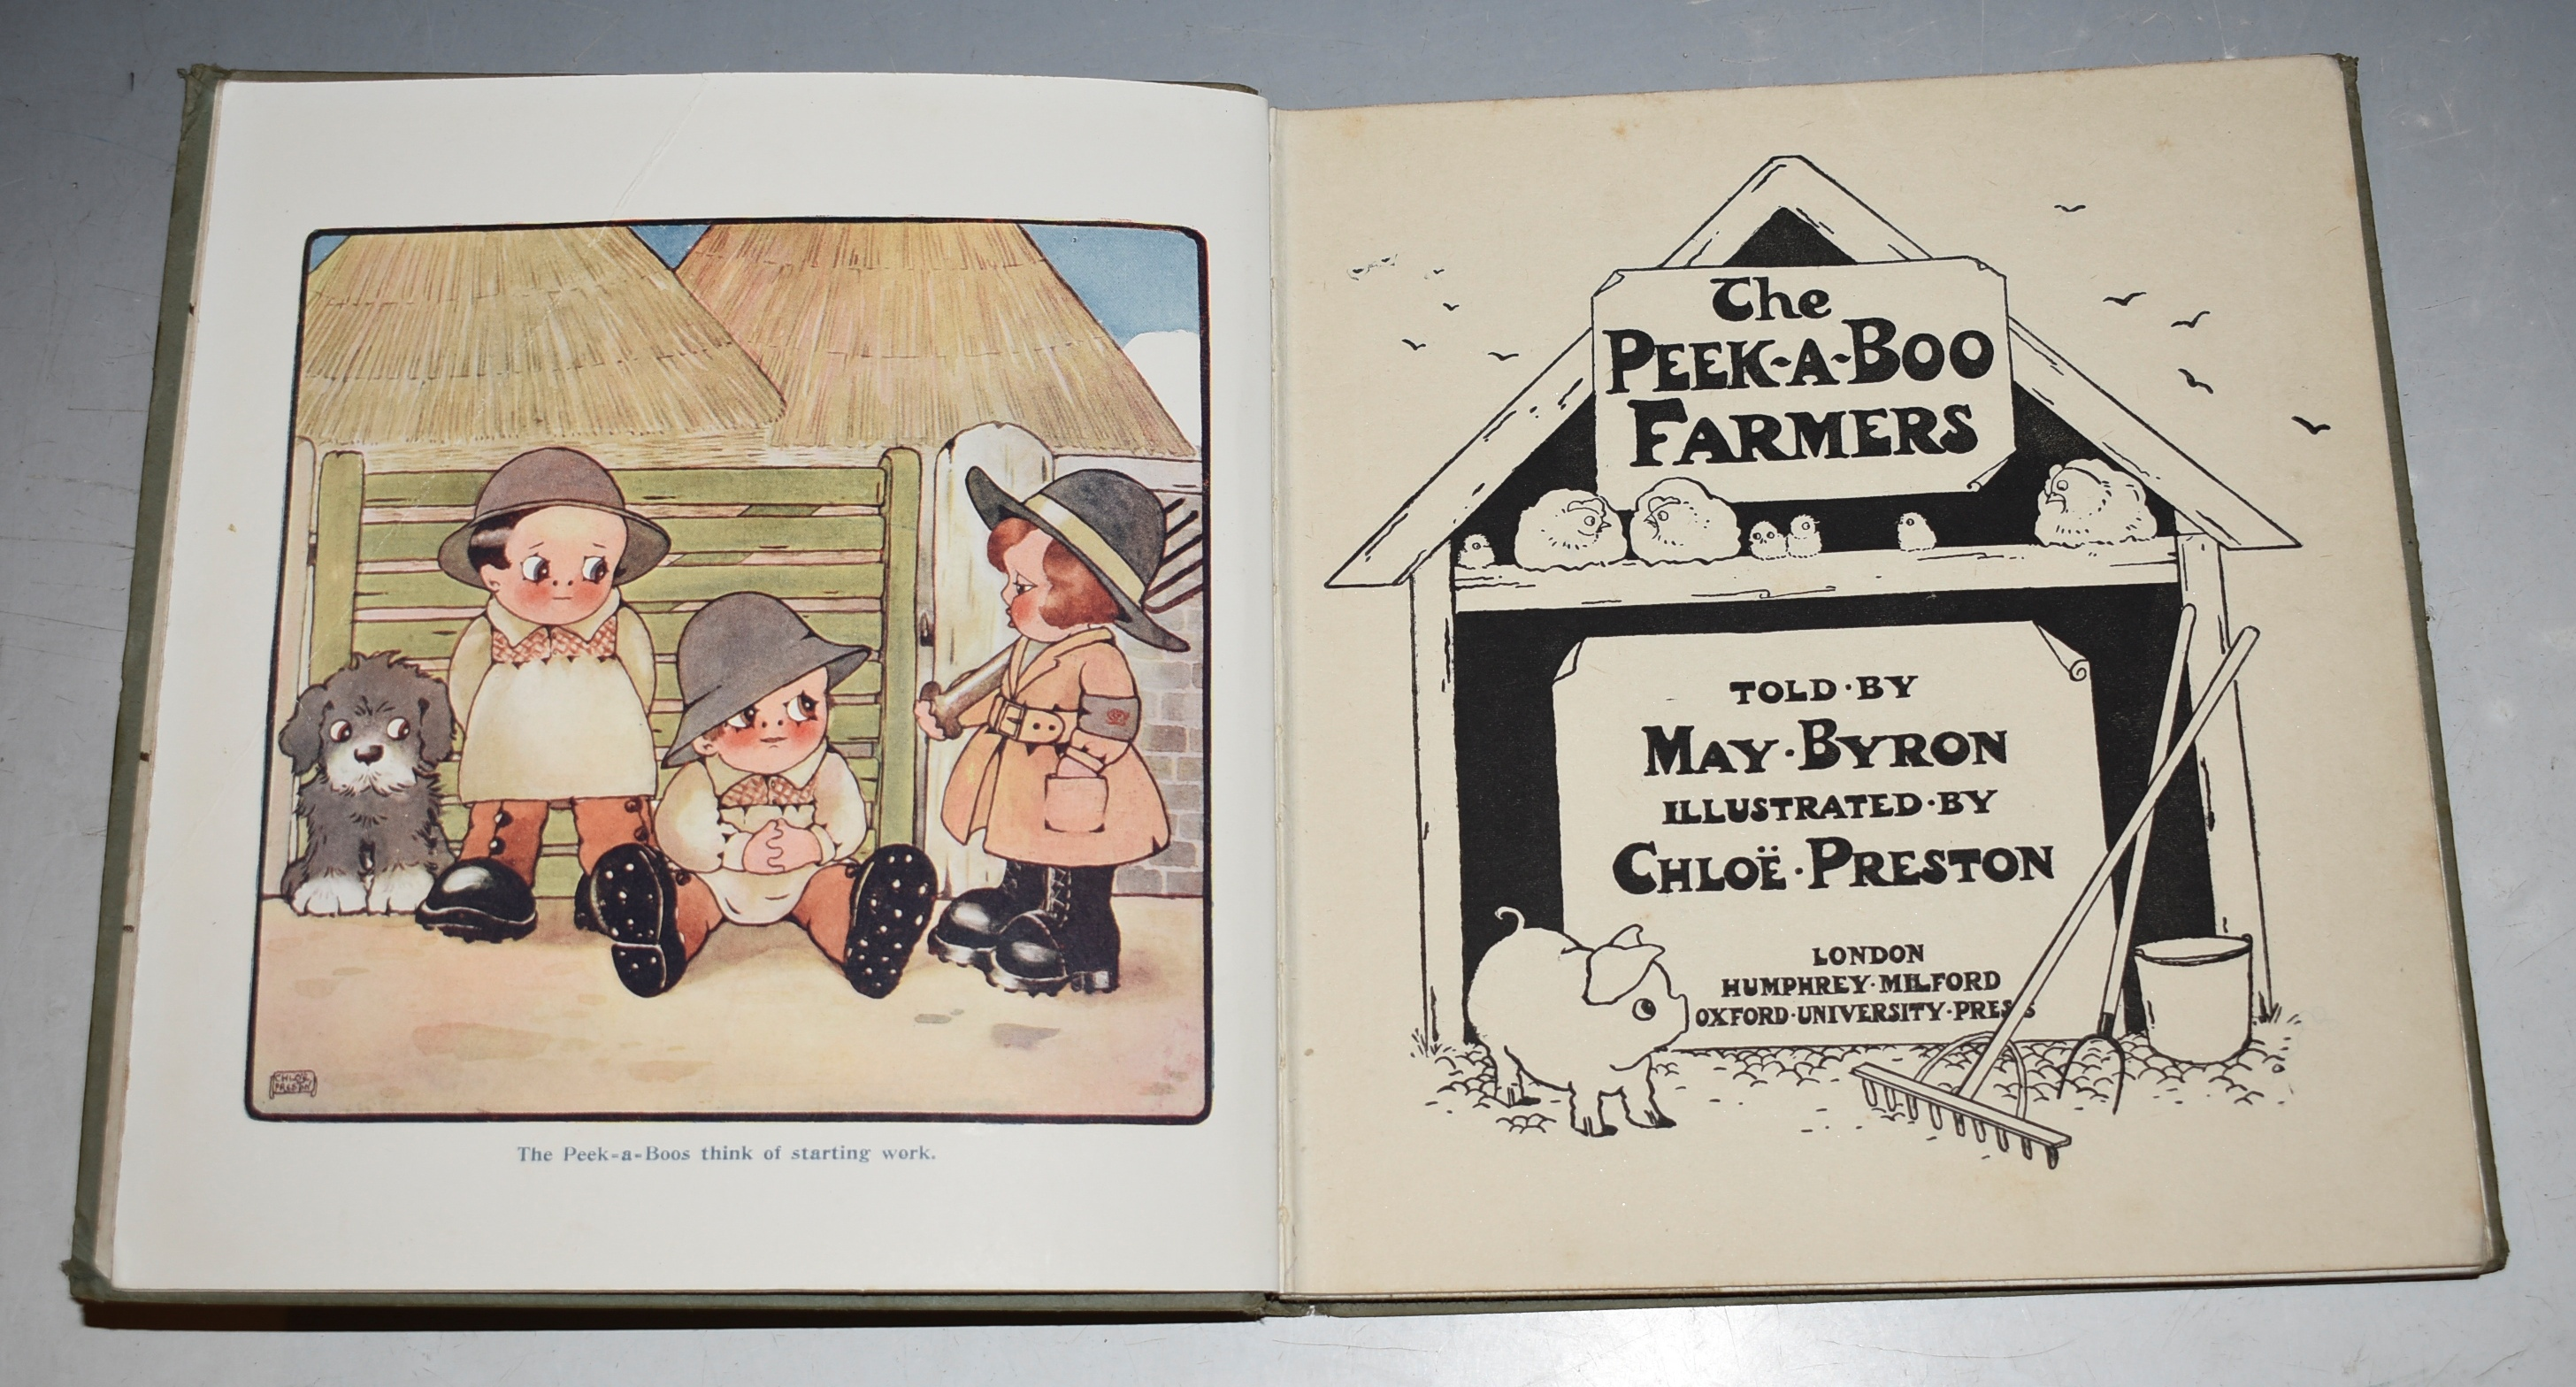 Image for The Peek-A-Boo Farmers Told by May Byron. Illustrated by Chloe Preston.